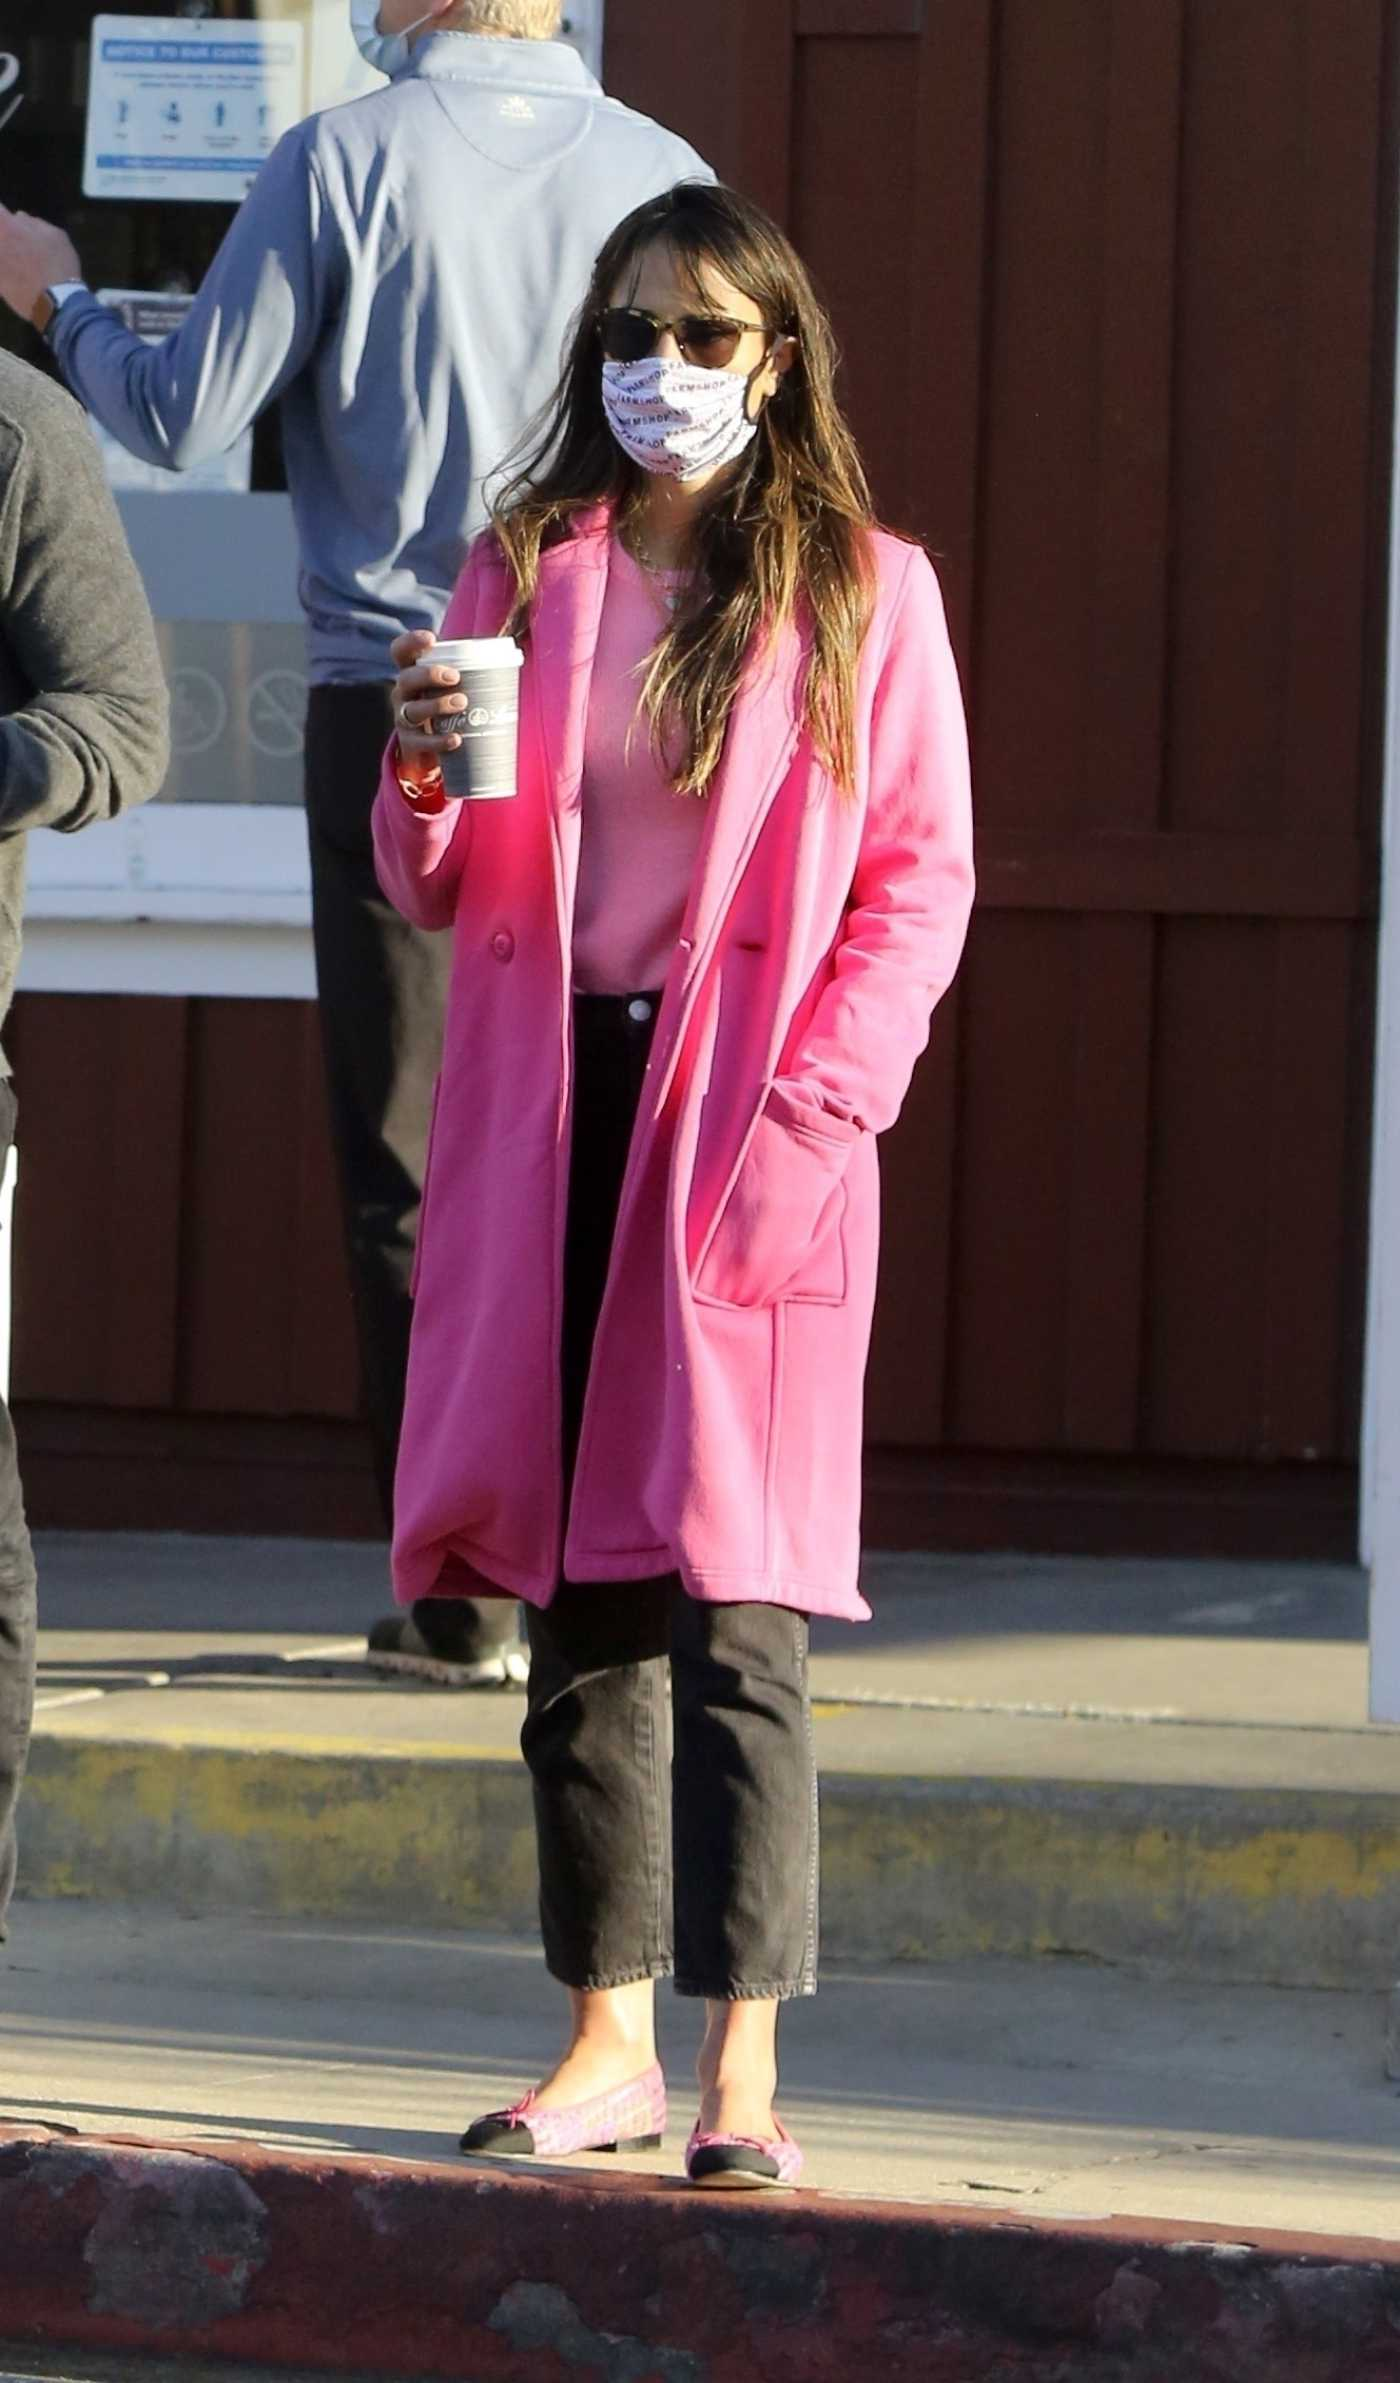 Jordana Brewster in a Pink Coat Was Seen Out with Mason Morfit in Los Angeles 01/19/2021